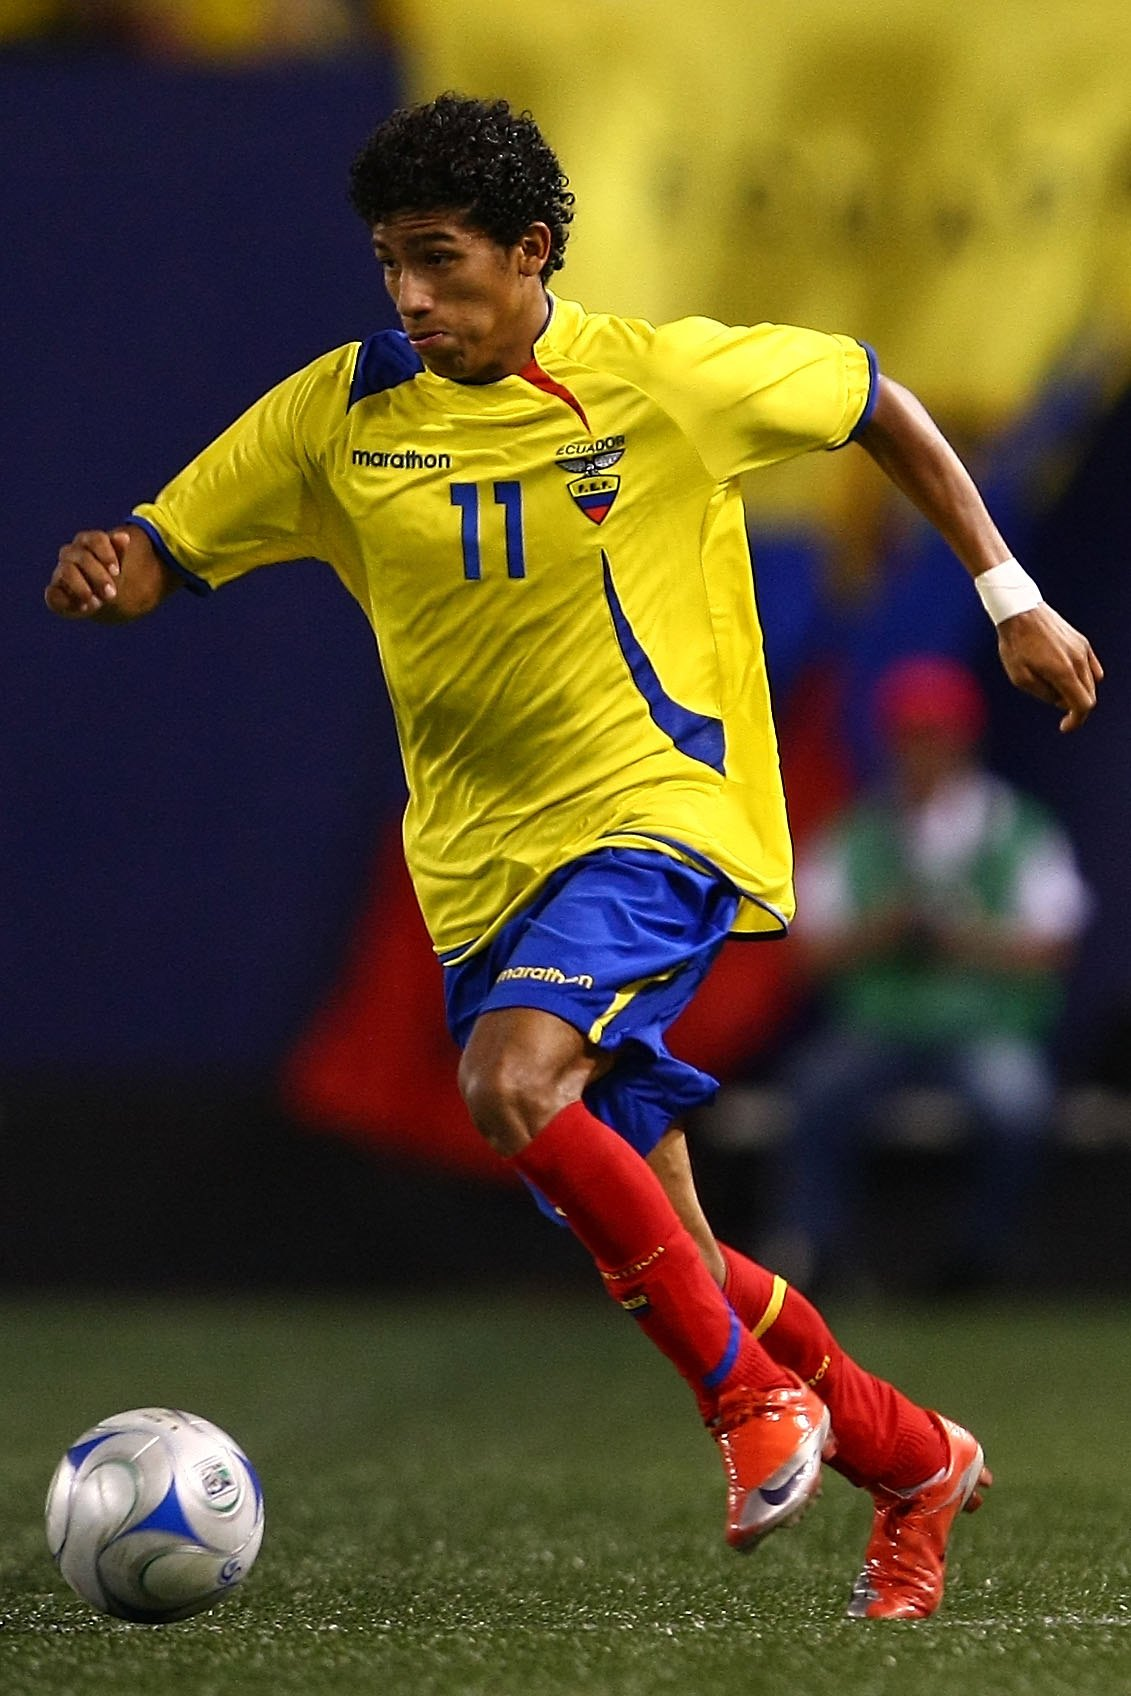 EAST RUTHERFORD, NJ - AUGUST 12:  Joao Rojas #11 of Ecuador looks to pass against Jamaica during their match at Giants Stadium on August 12, 2009 in East Rutherford, New Jersey.  (Photo by Chris McGrath/Getty Images)